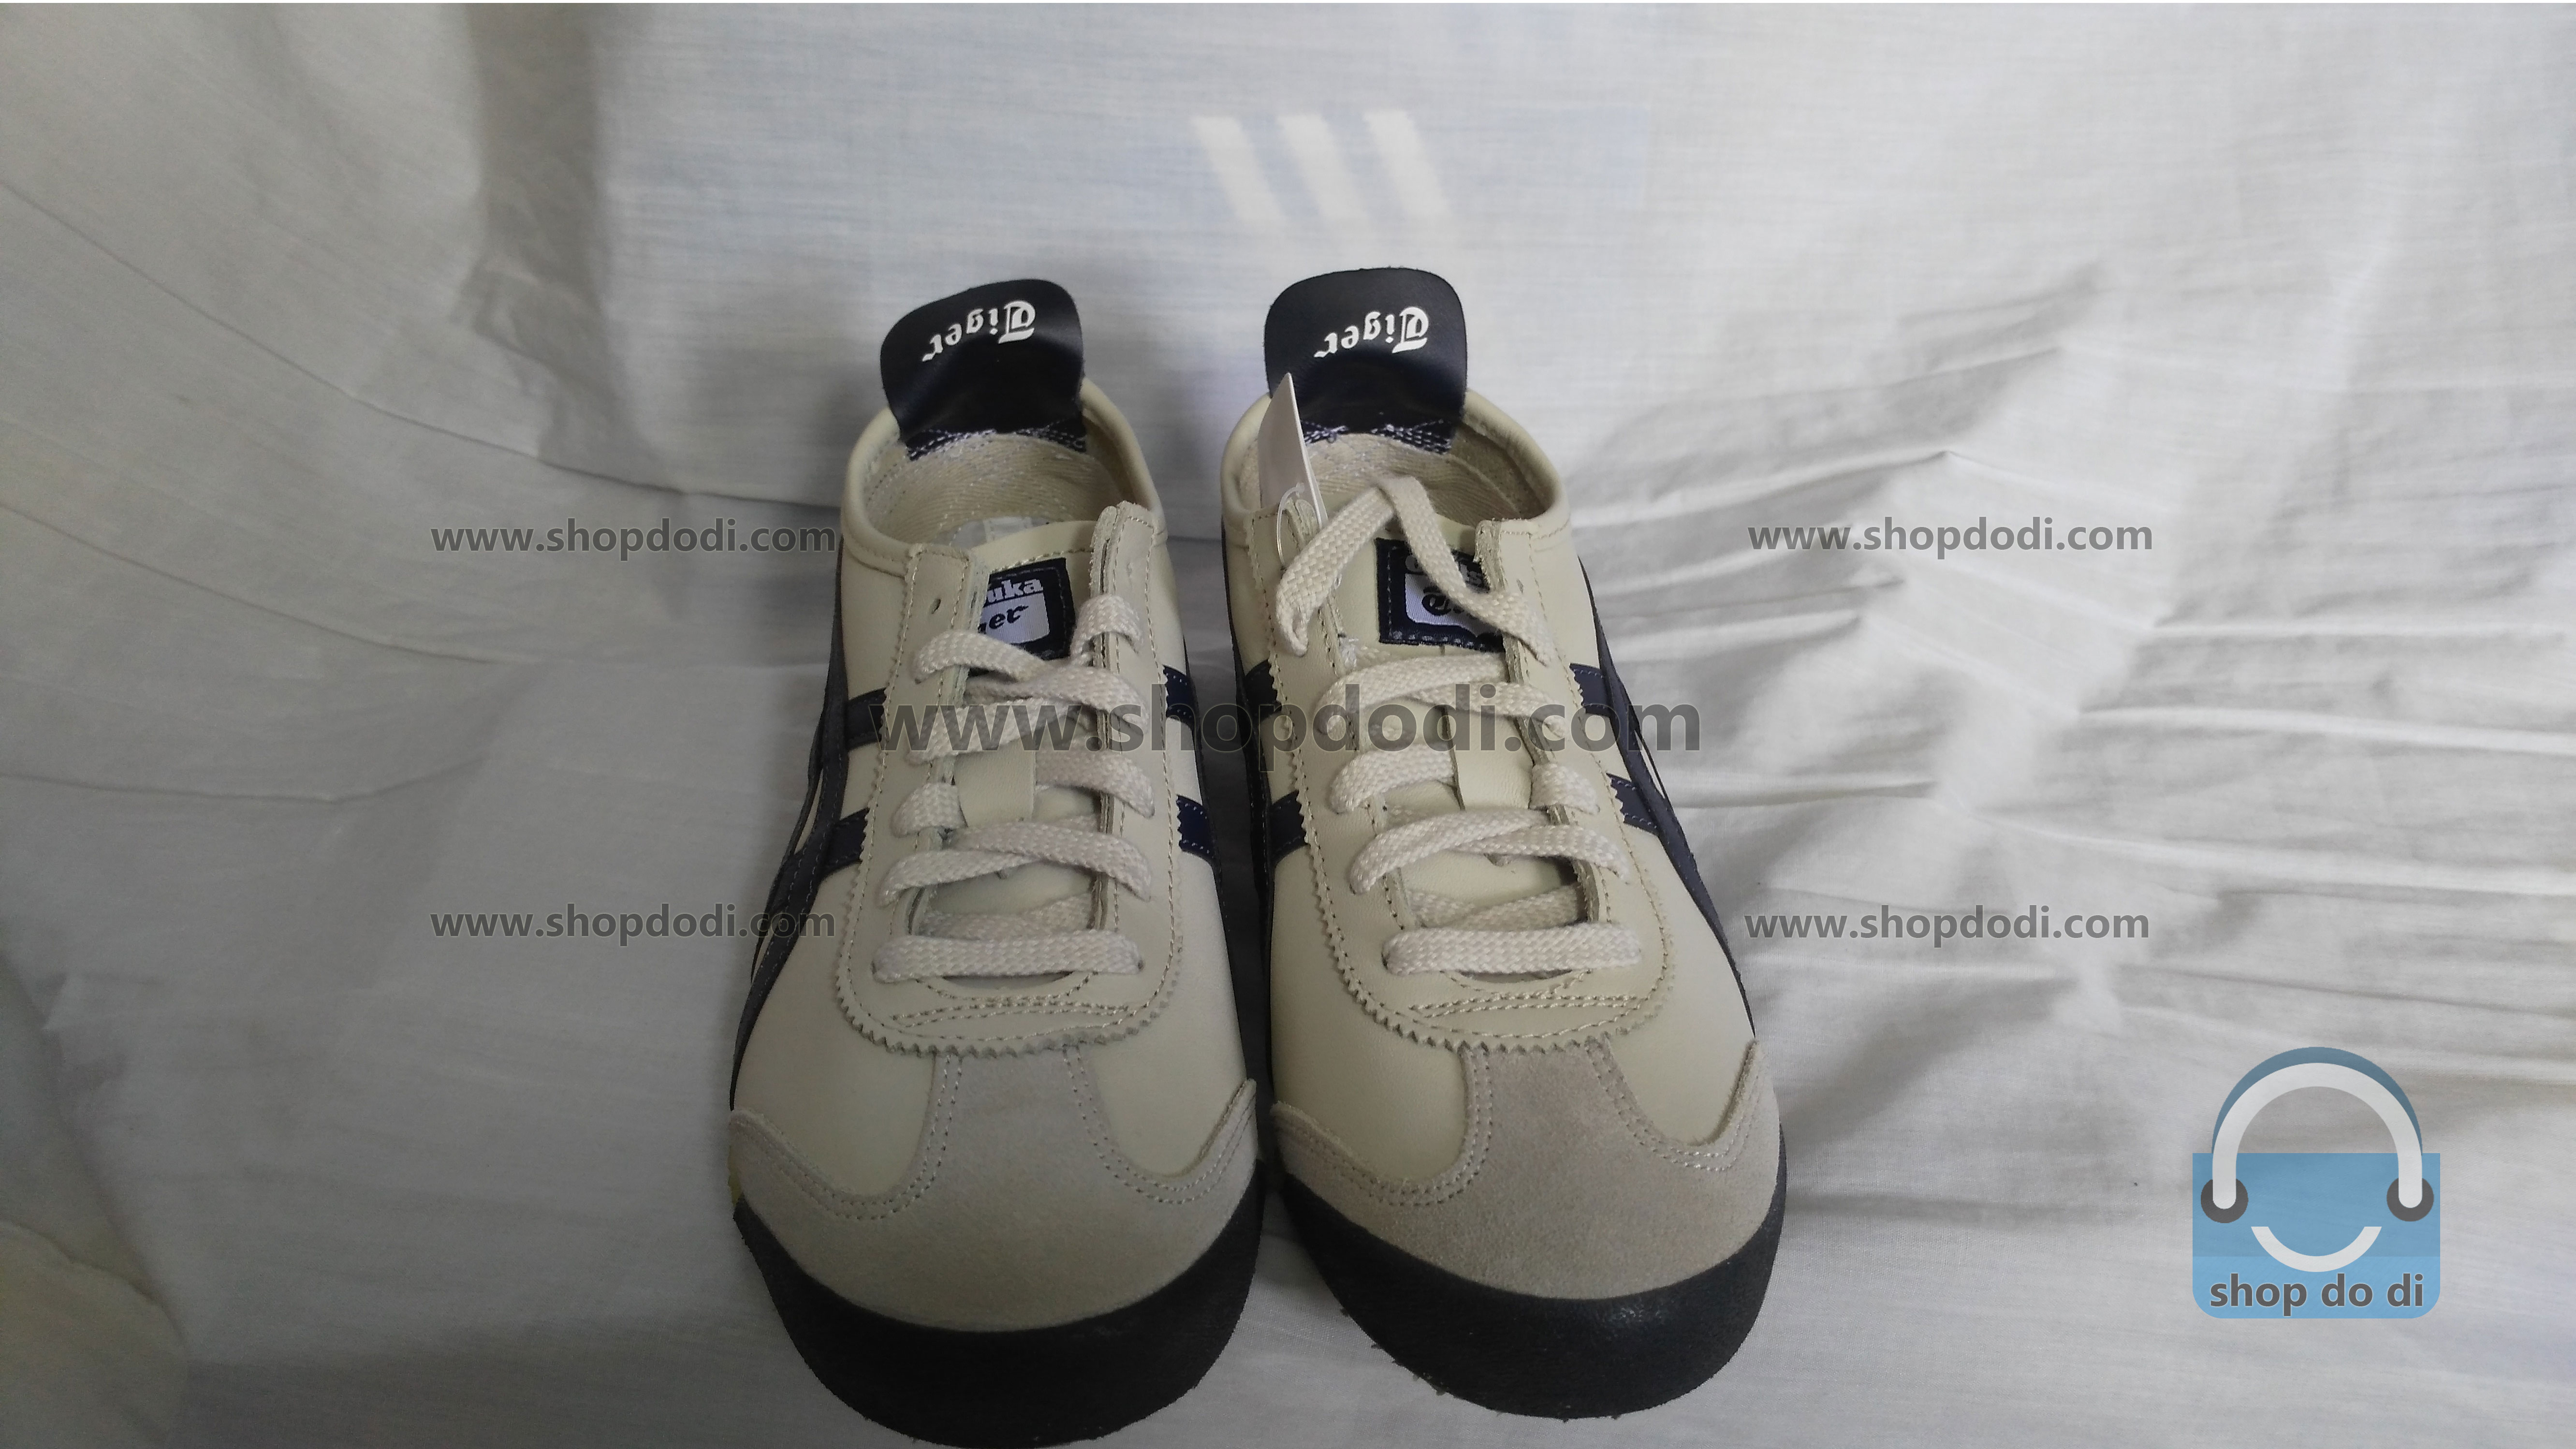 Onitsuka Tiger Mexico 66 Birch india ink DL408 1659 (Size 38 UK,5.5 US, 24.0 CM)